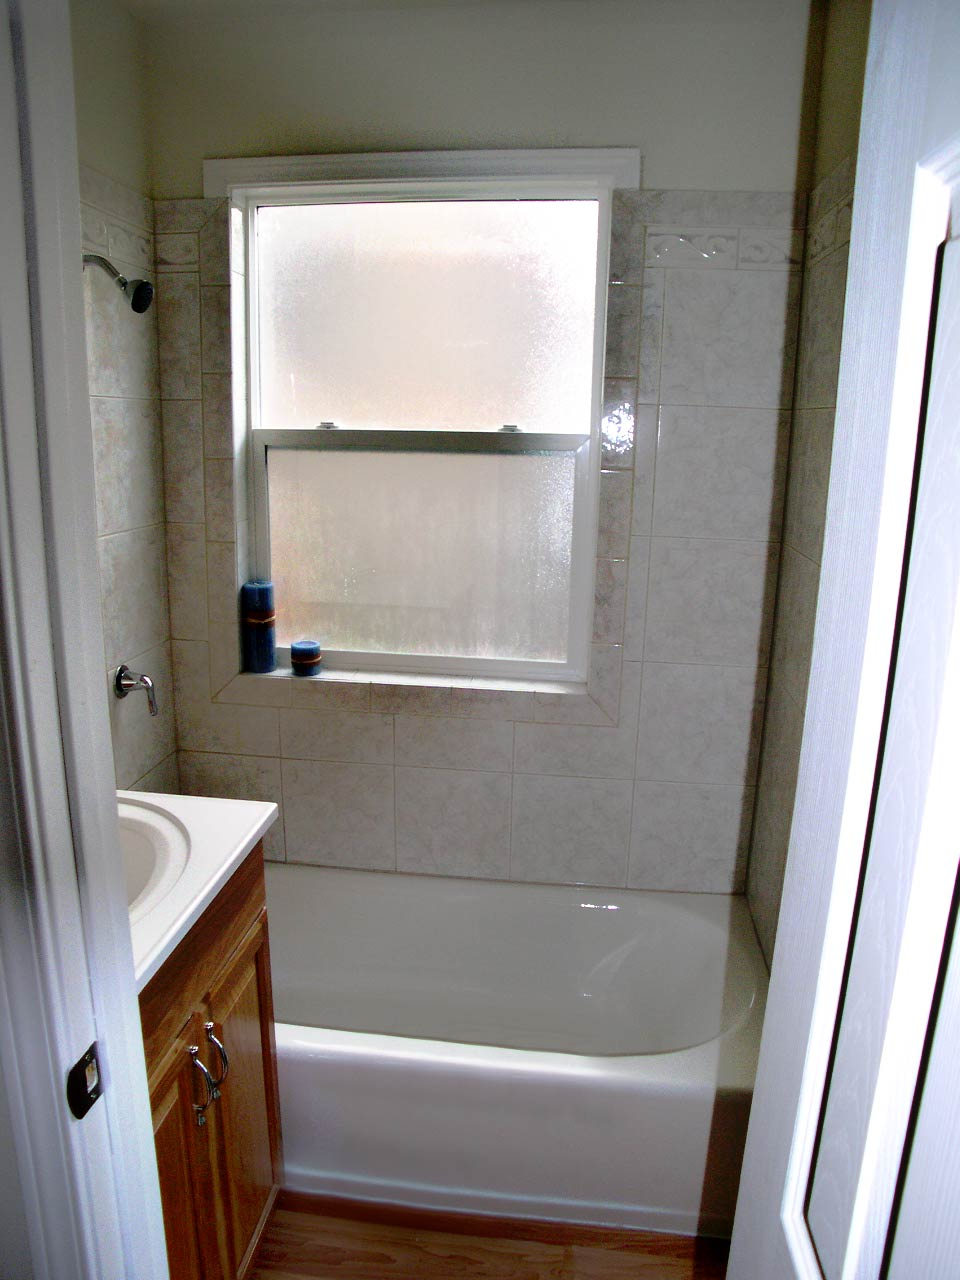 Clark Watson Home Remodel - Bathroom After